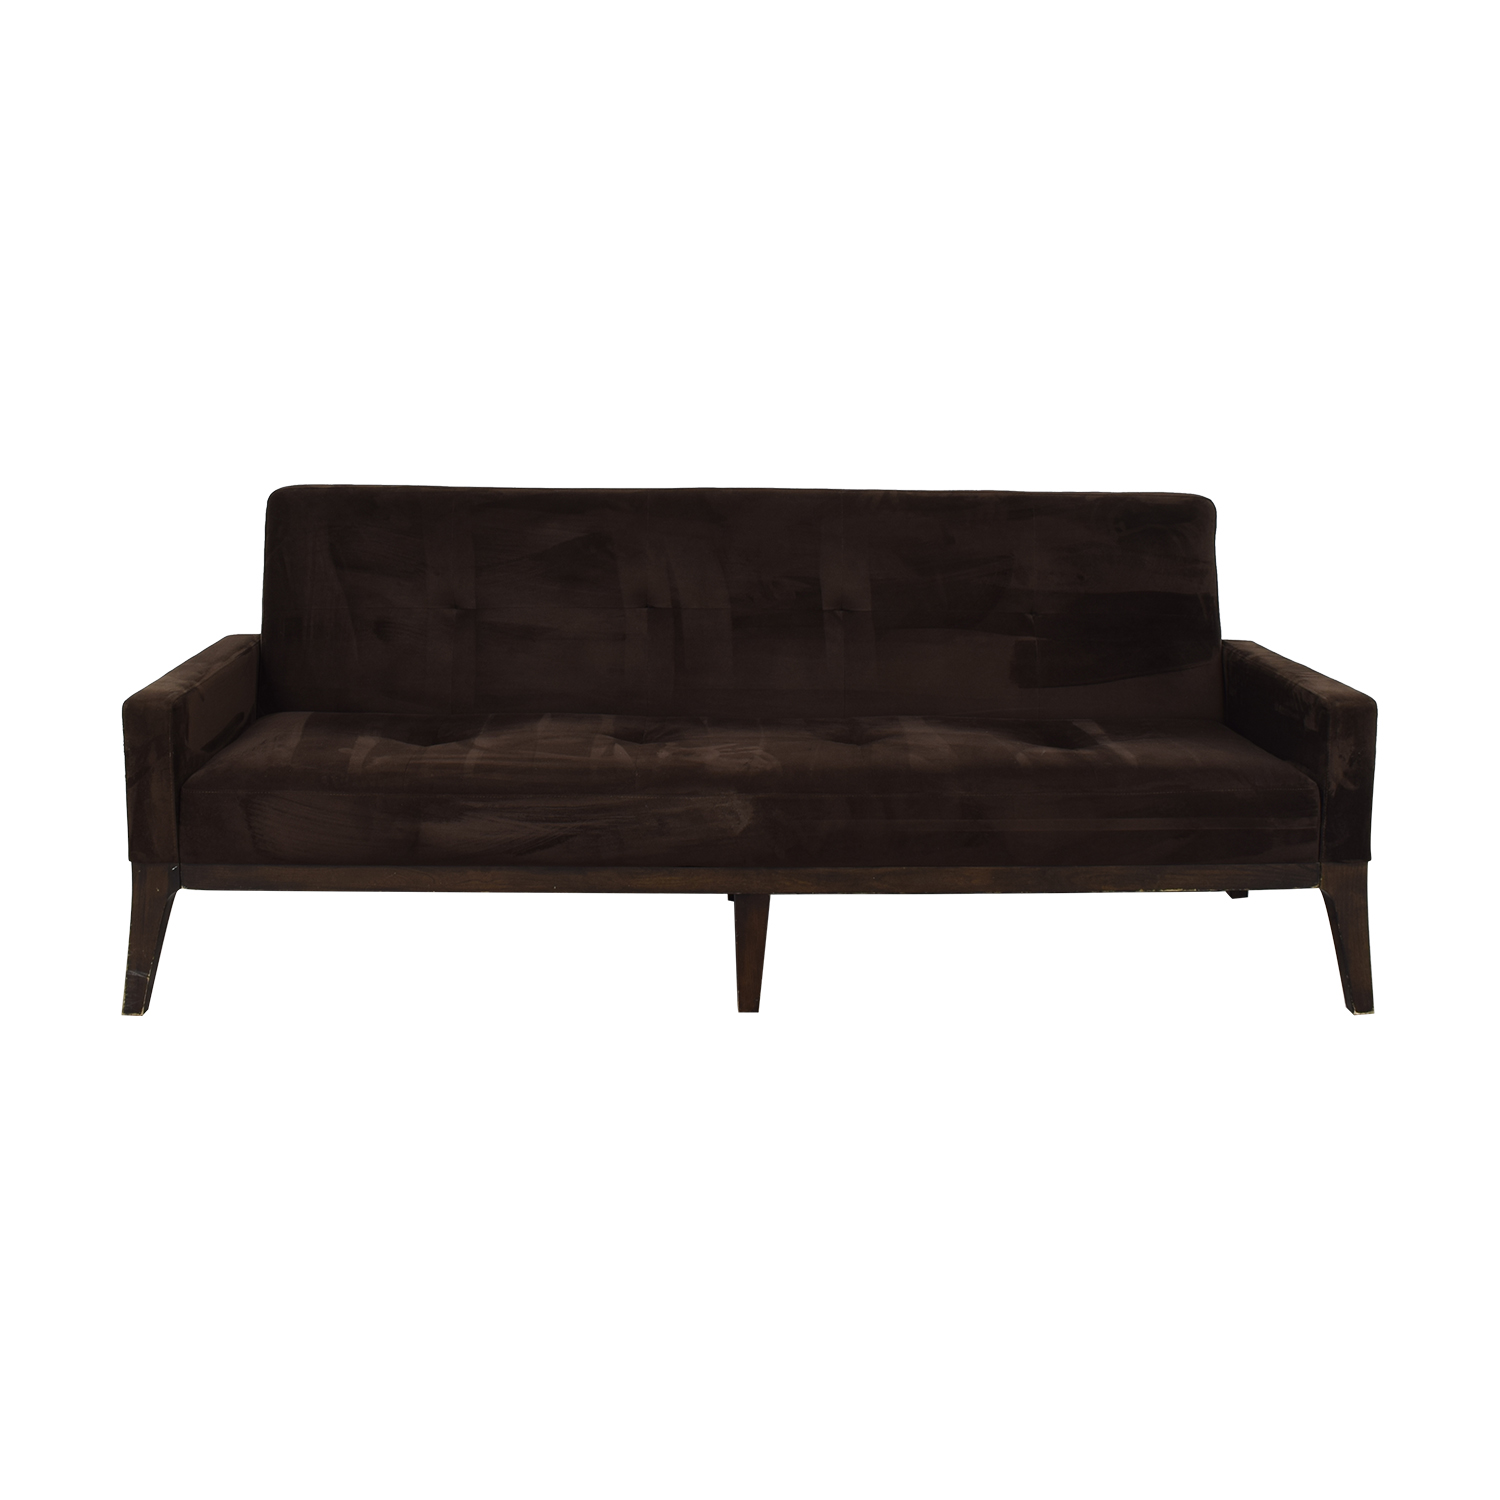 shop West Elm Sleek Sofa Bed West Elm Sofa Beds